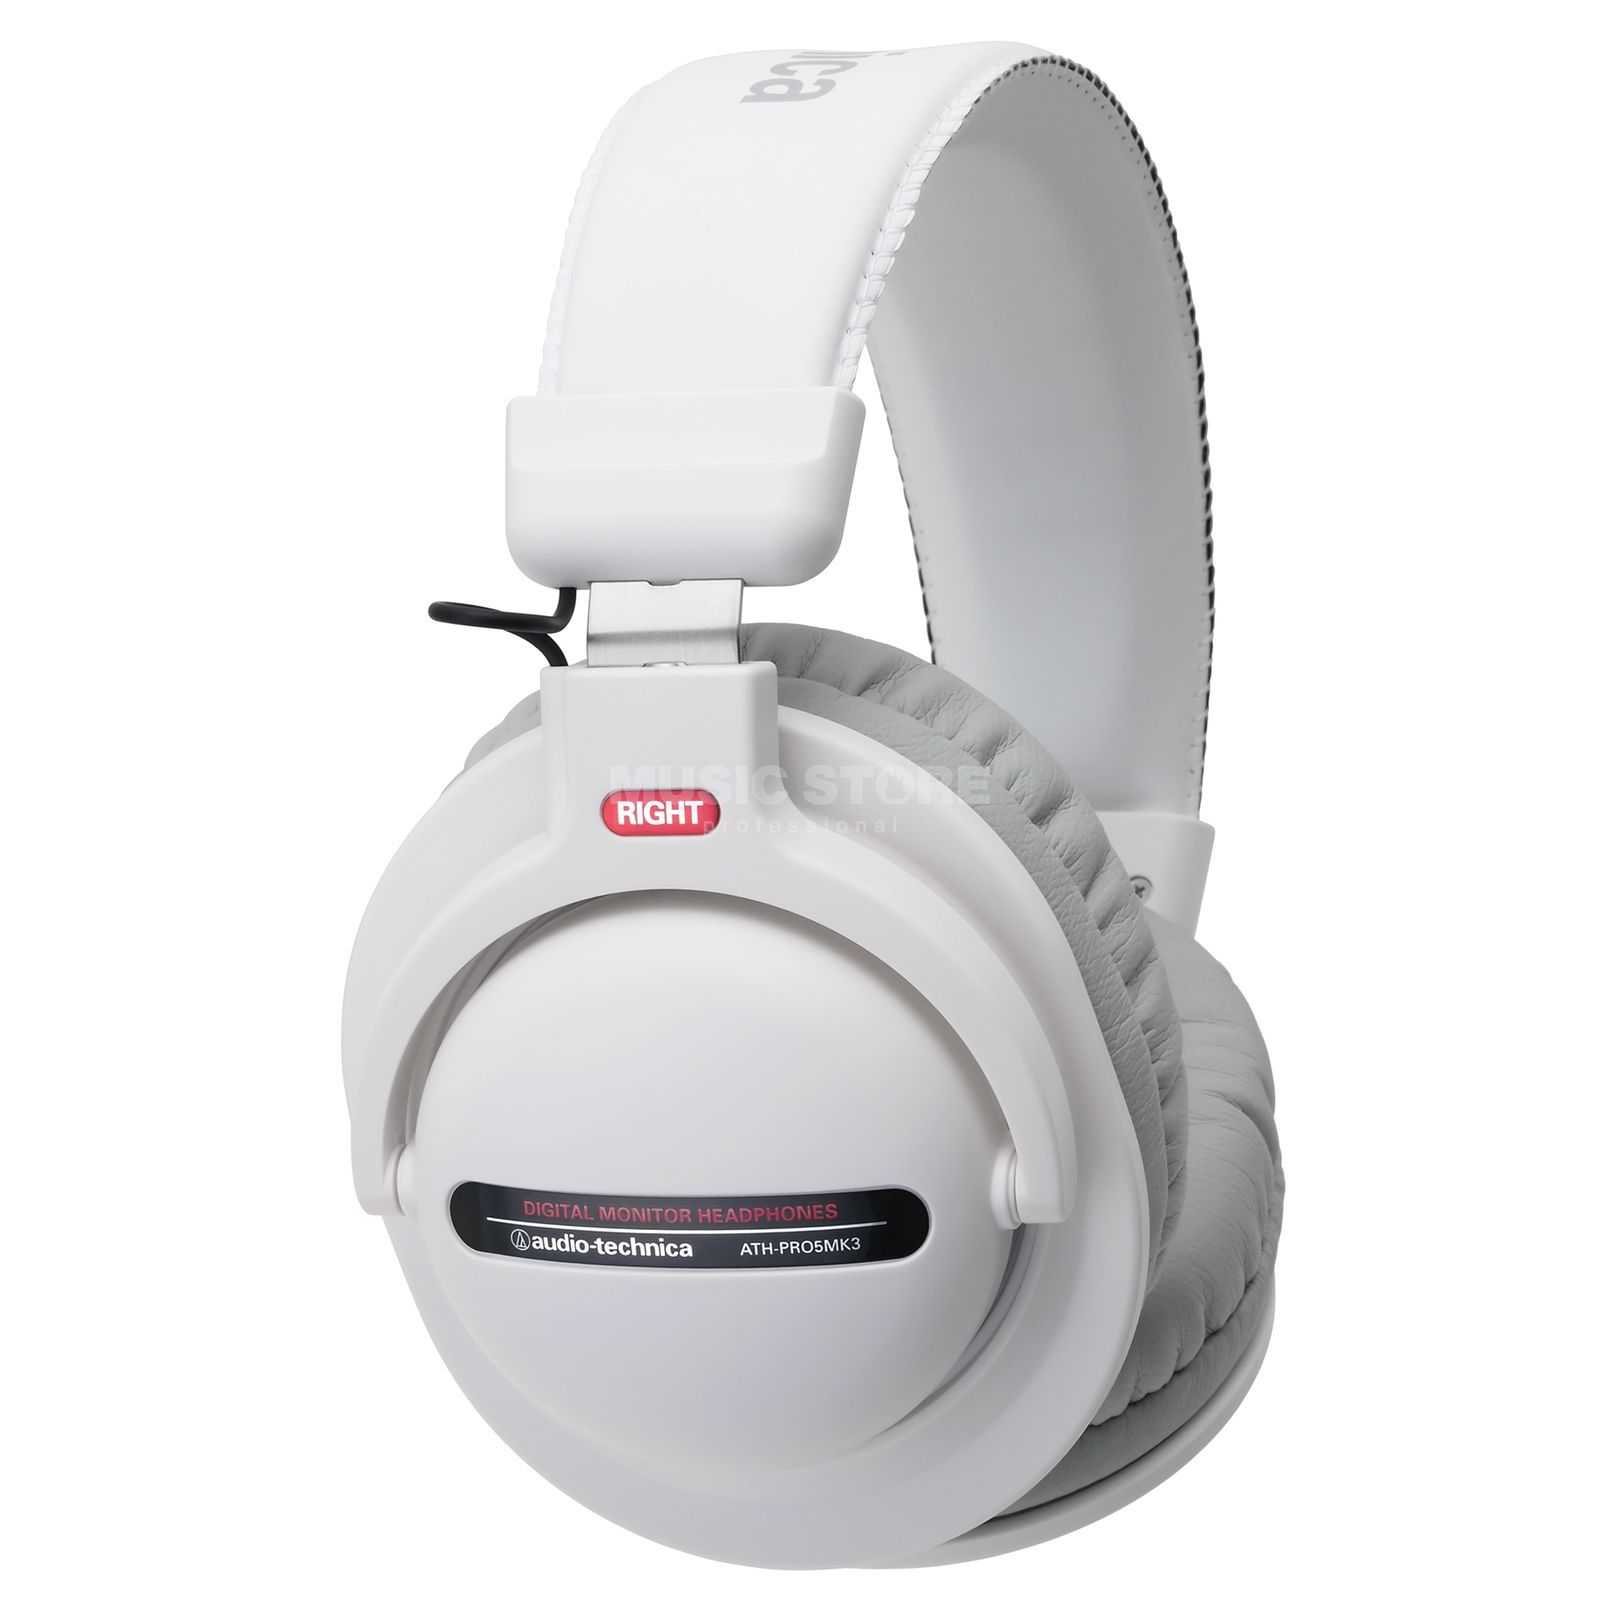 Audio-Technica ATH-Pro5 MK3 WH DJ koptelefoon, wit Productafbeelding